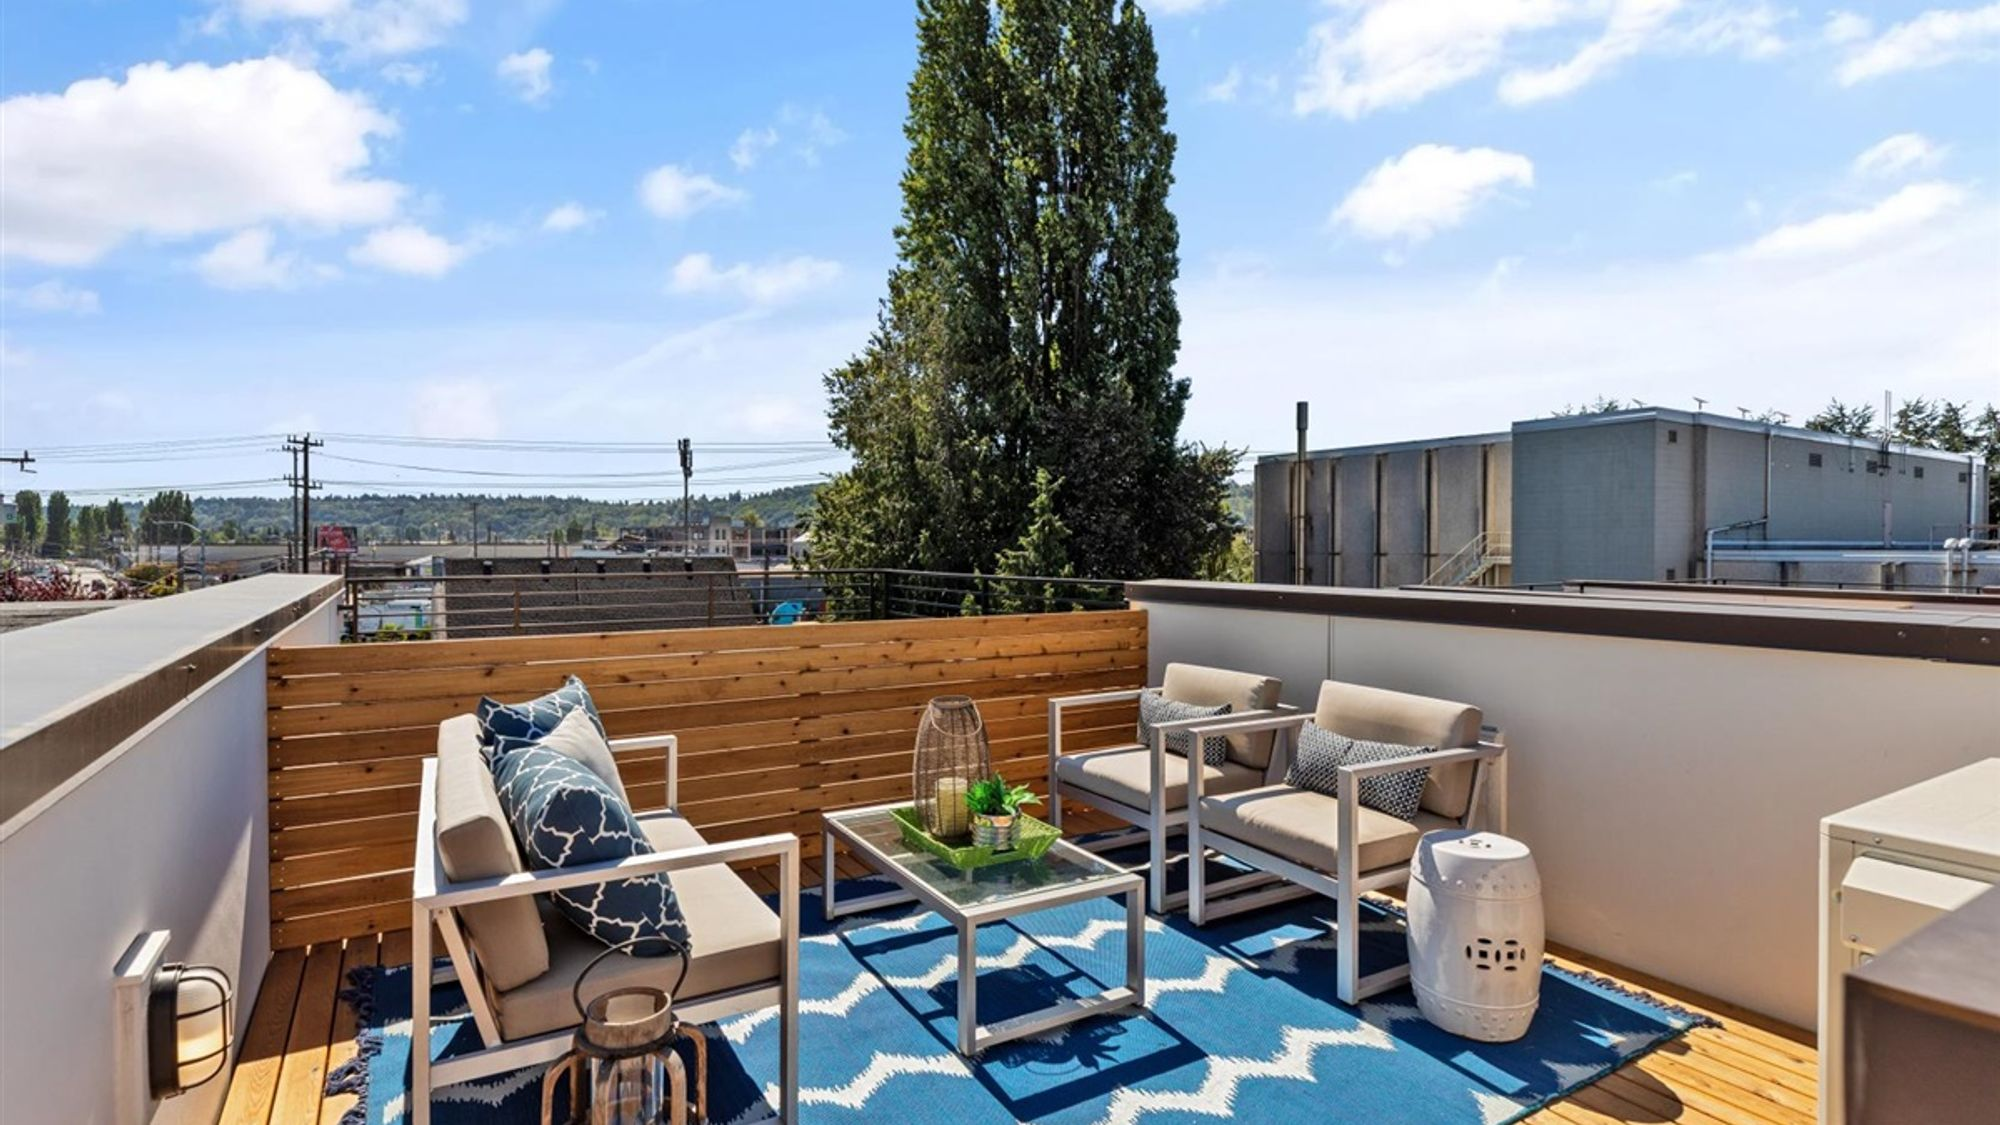 Roof Deck of the Nuetra home by Sage Homes Northwest